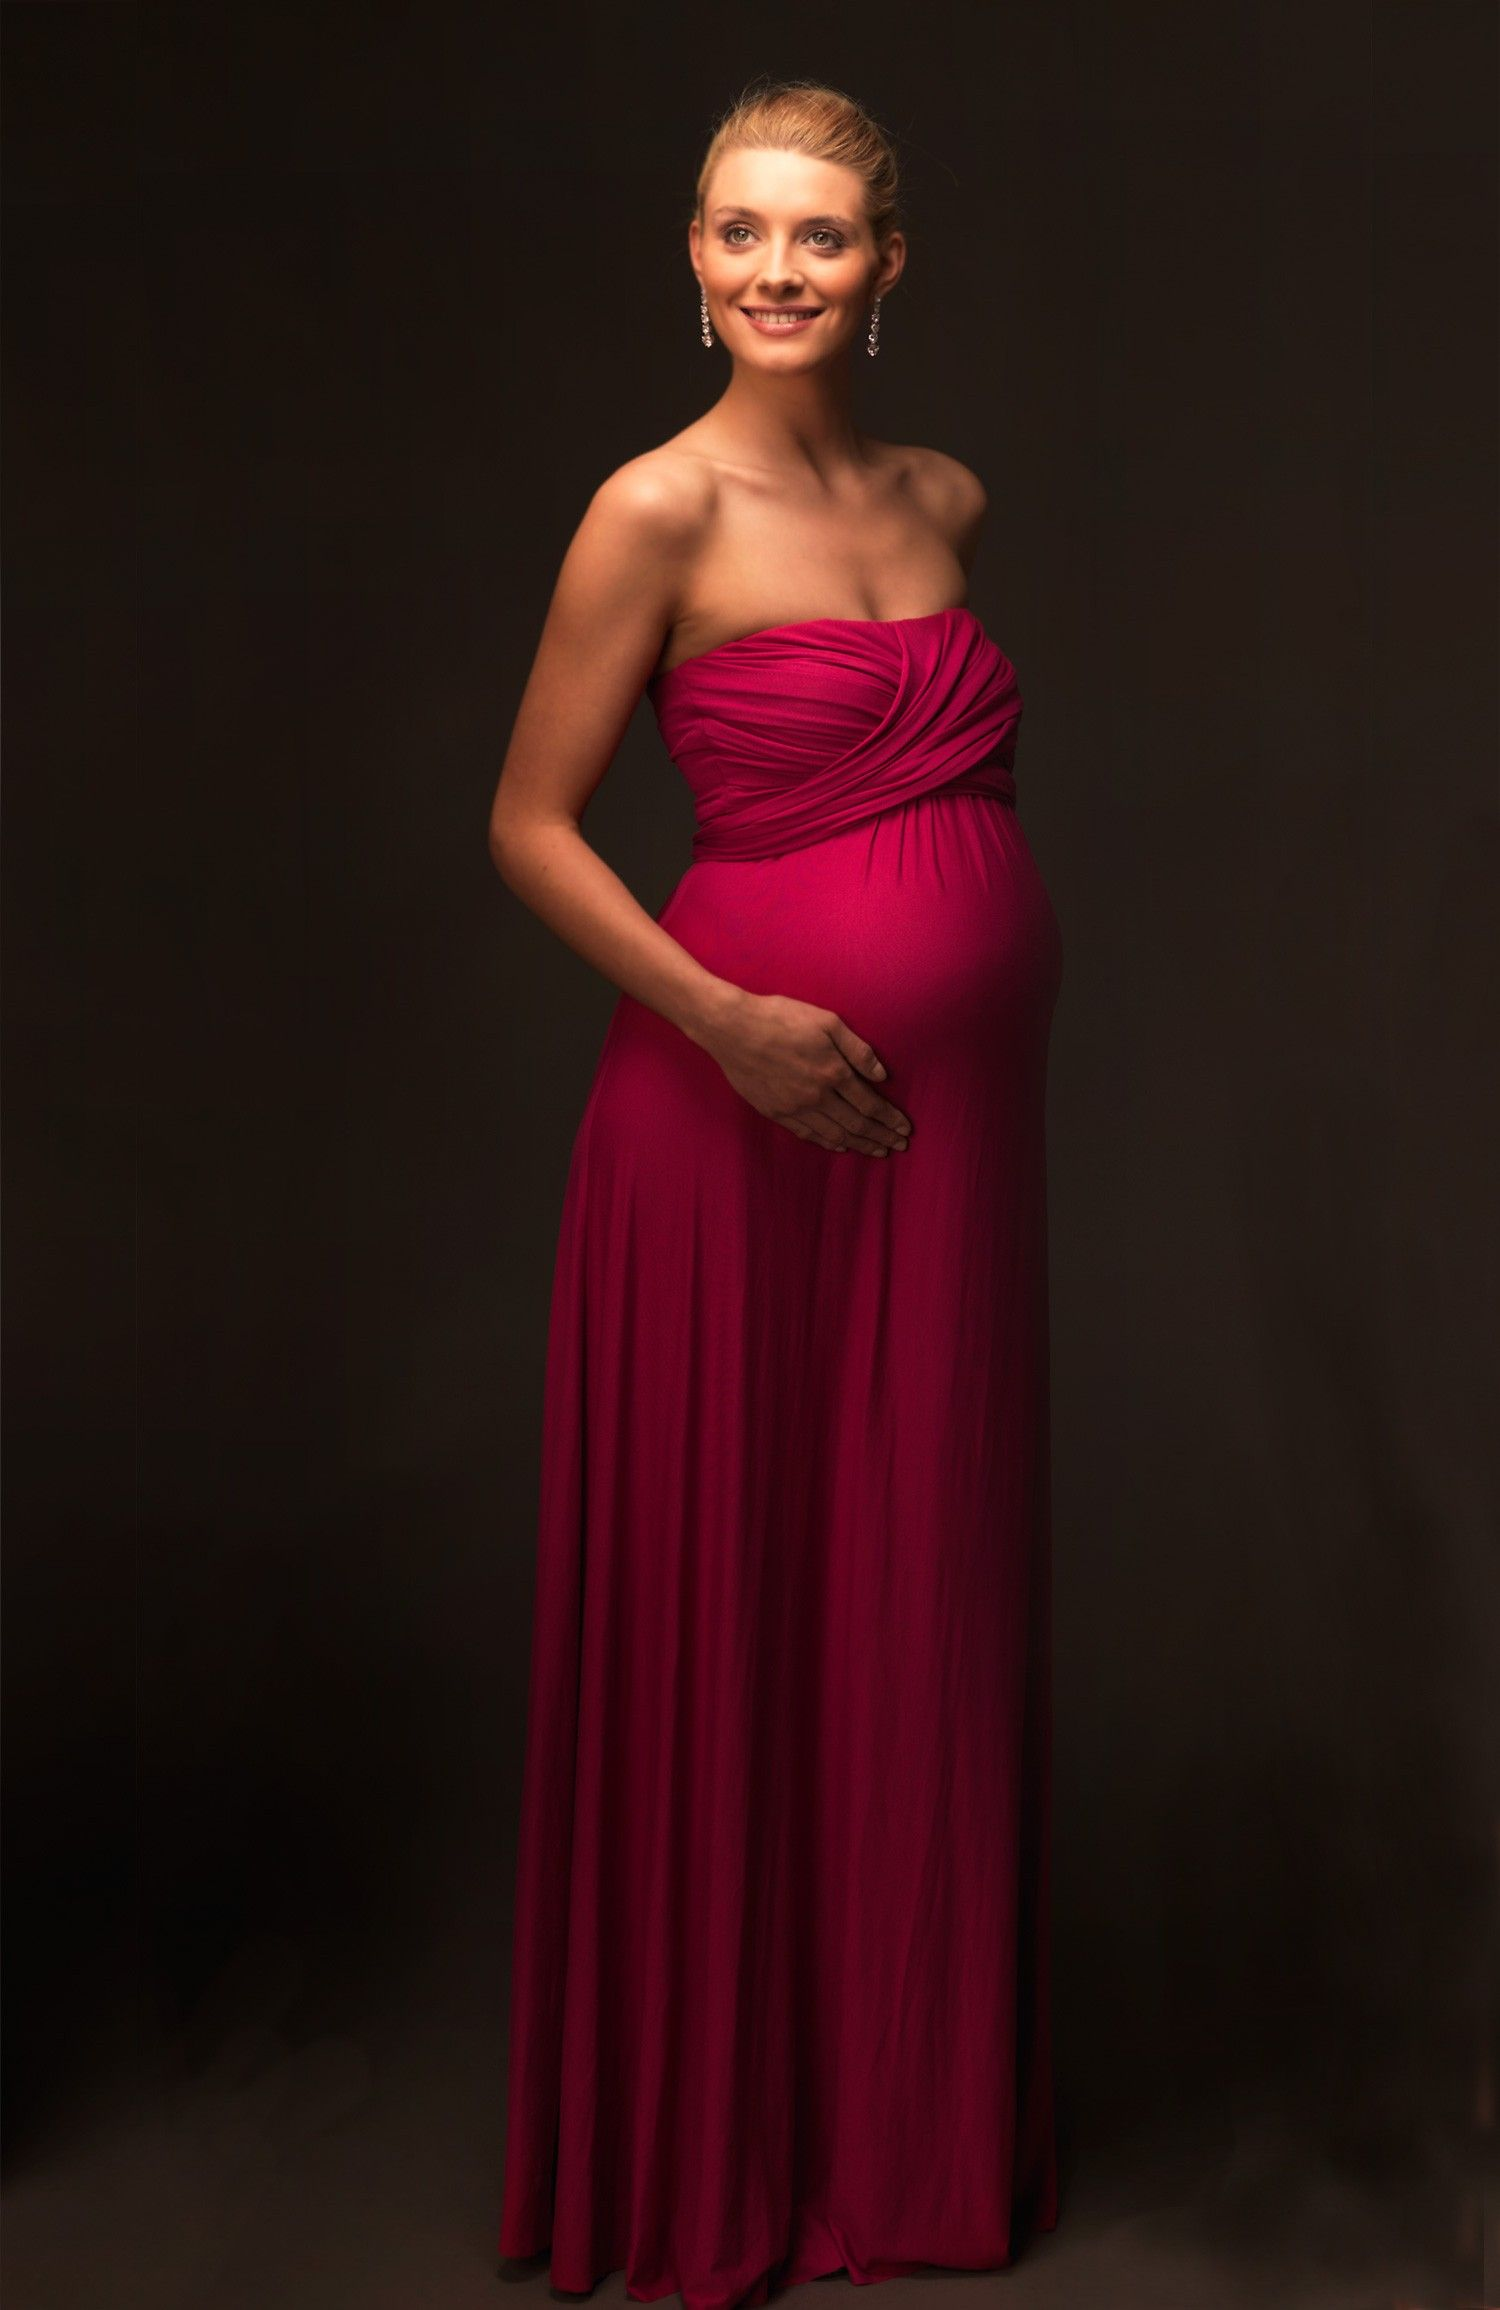 Maternity Dress Wedding Bridesmaid Maroon Infinity Wrap Formal ...